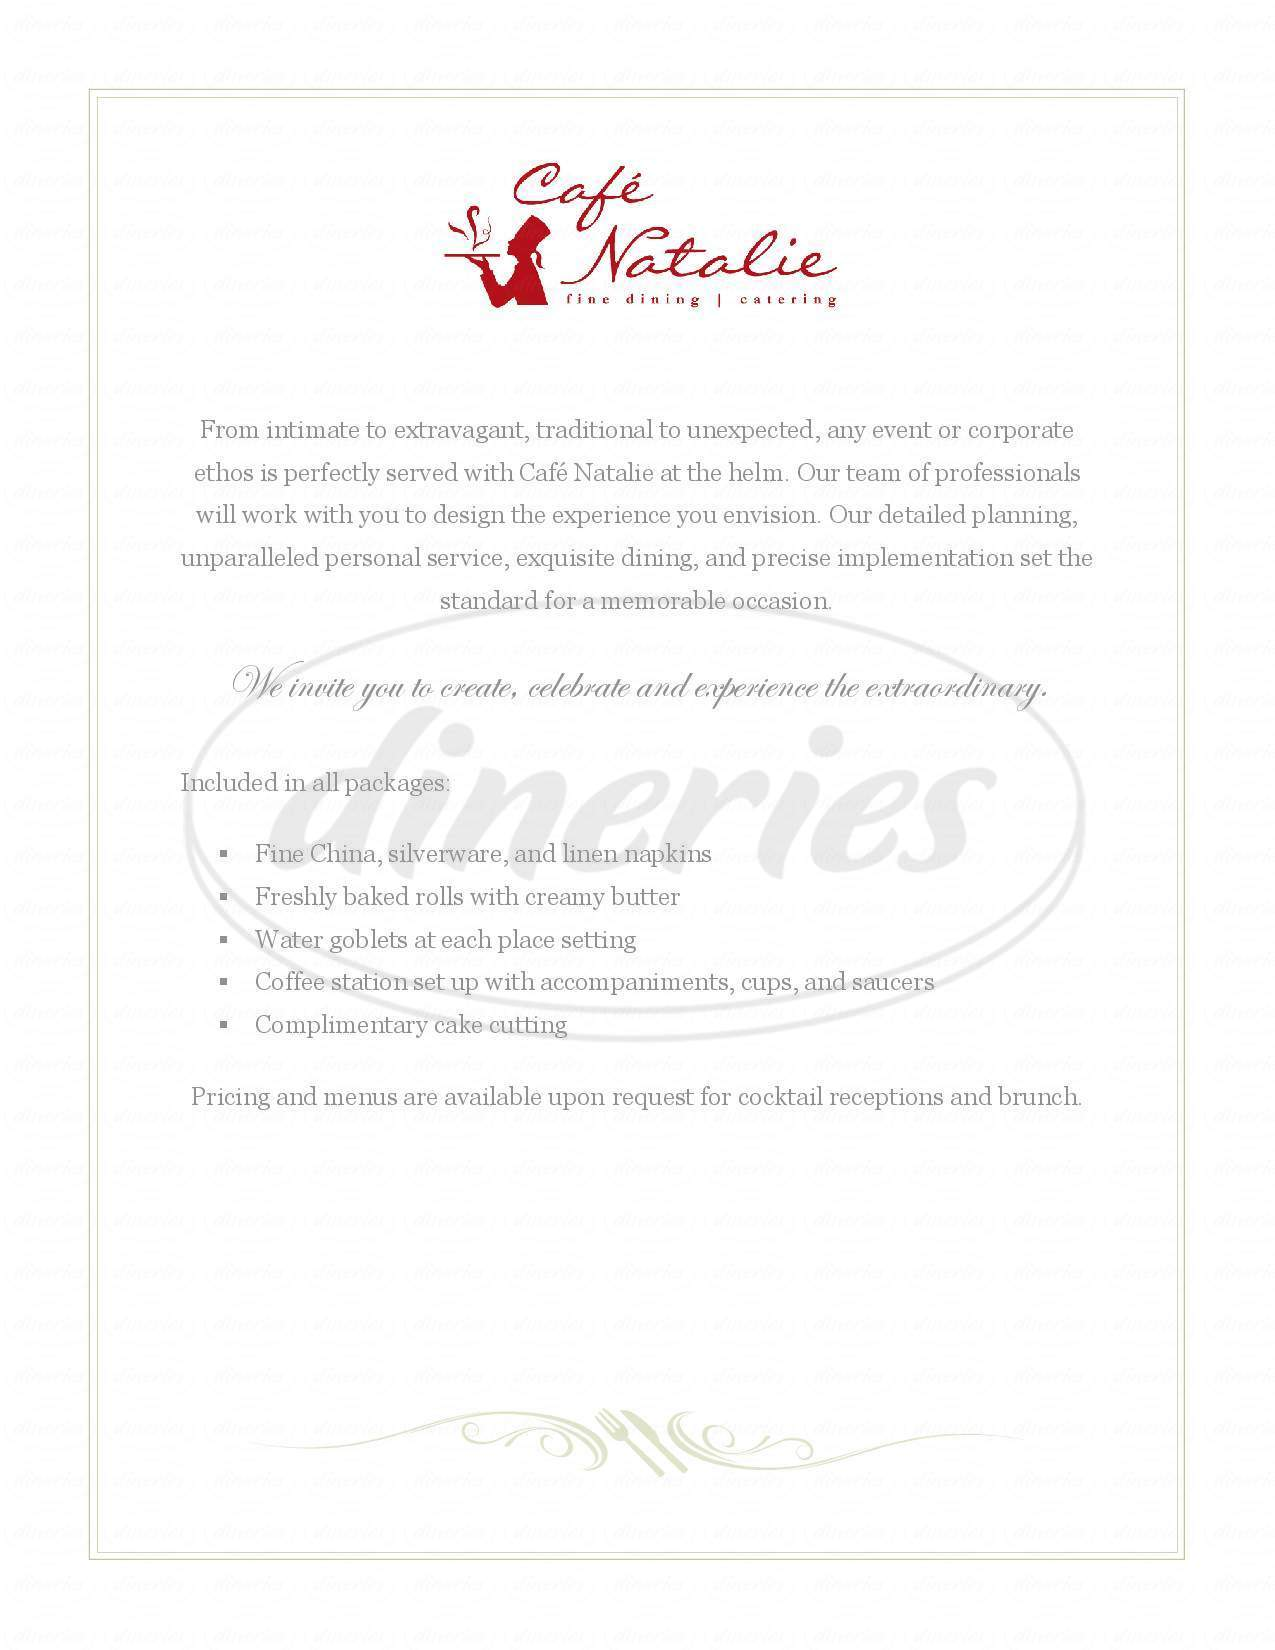 menu for Cafe Natalie Catering & Dining